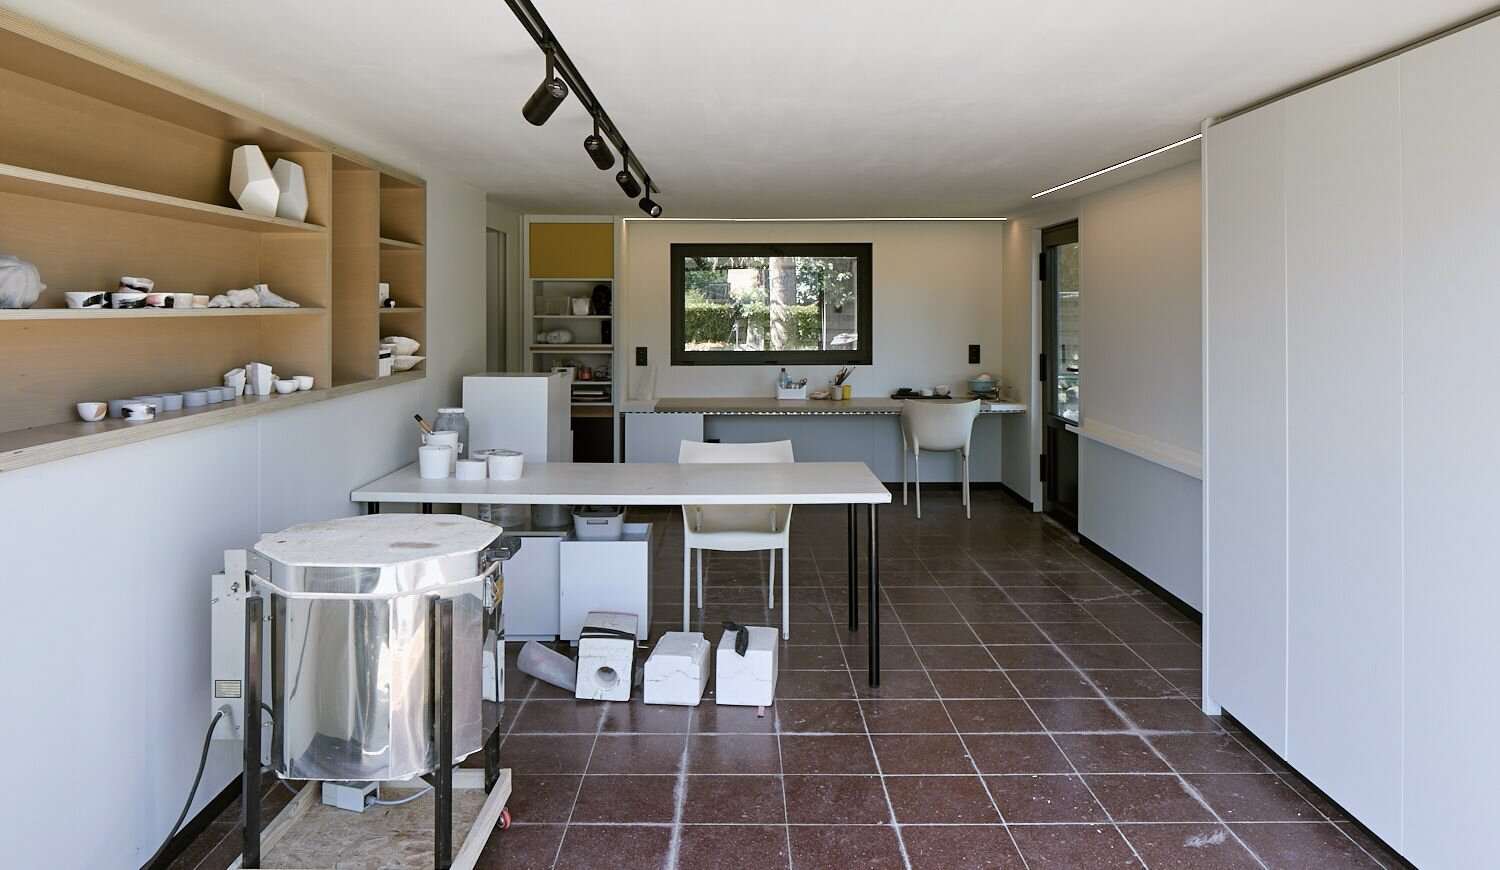 Inside, built-in shelving and cabinetry offer many opportunities for using the garage space.  Photo 15 of 17 in For €795K, You Can Buy This Boxy Belgian Home With a Surprisingly Colorful Interior